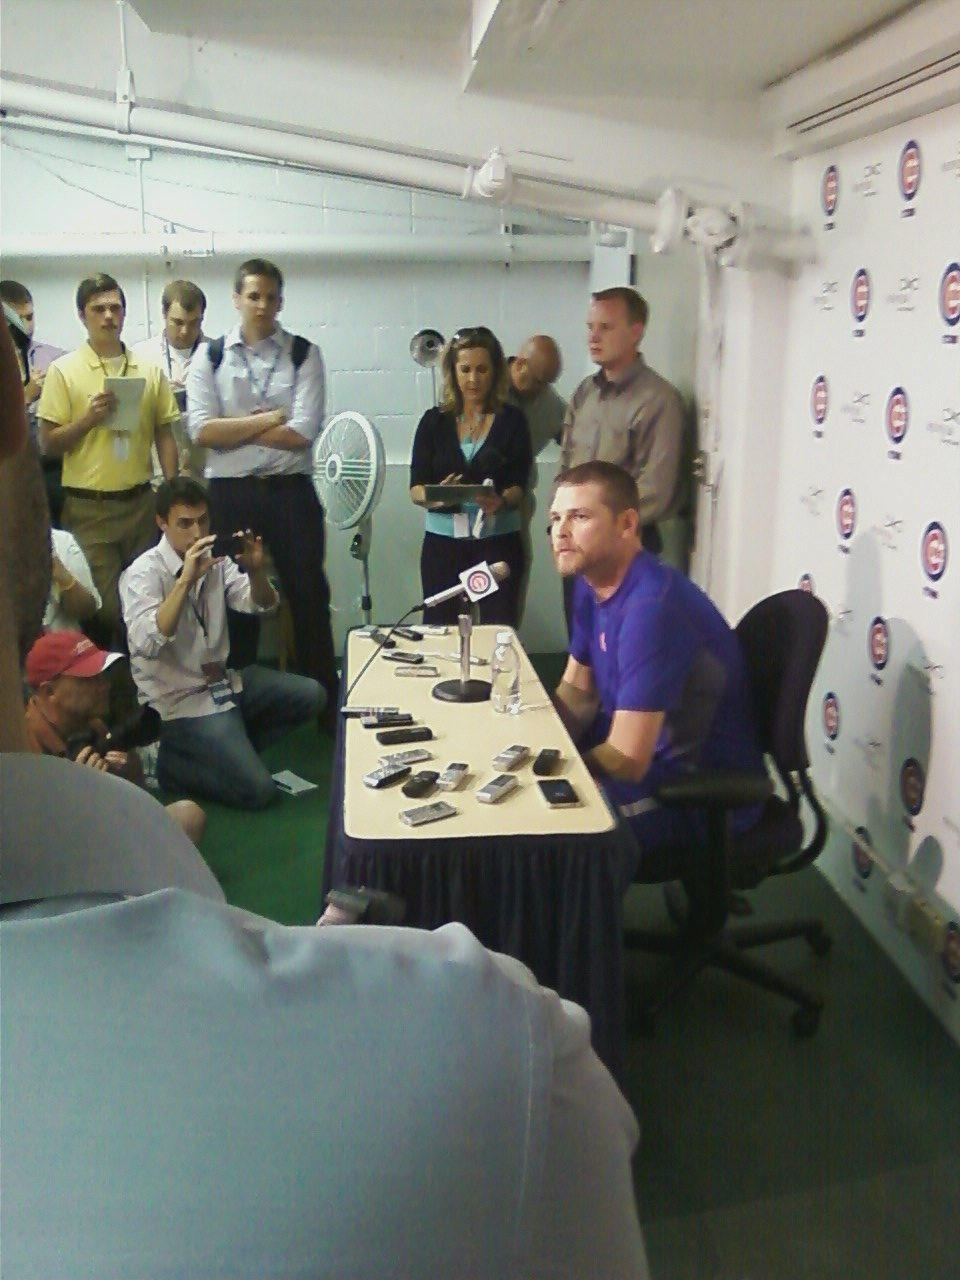 Kerry Wood discusses his retirement with the media after Friday's game.